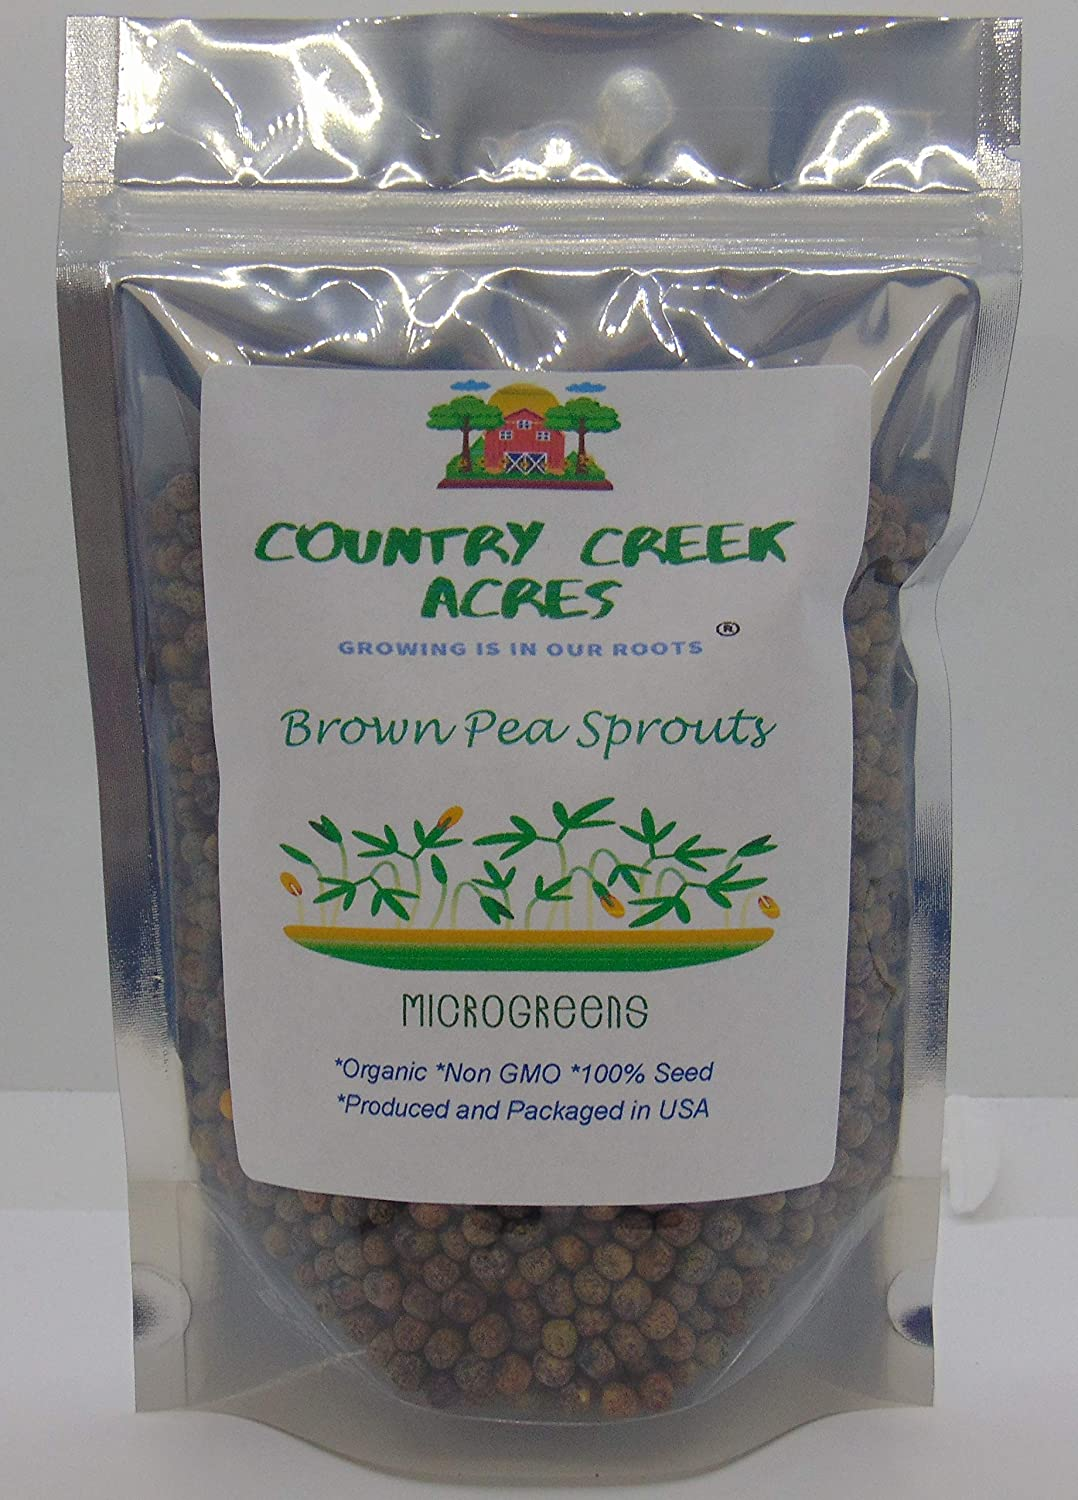 Brown Speckled Pea Sprouting Seed, Non GMO - 2 oz - Country Creek Brand - Brown Peas Sprouts, Garden Planting, Cooking, Soup, Emergency Food Storage, Vegetable Gardening, Juicing, Cover Crop